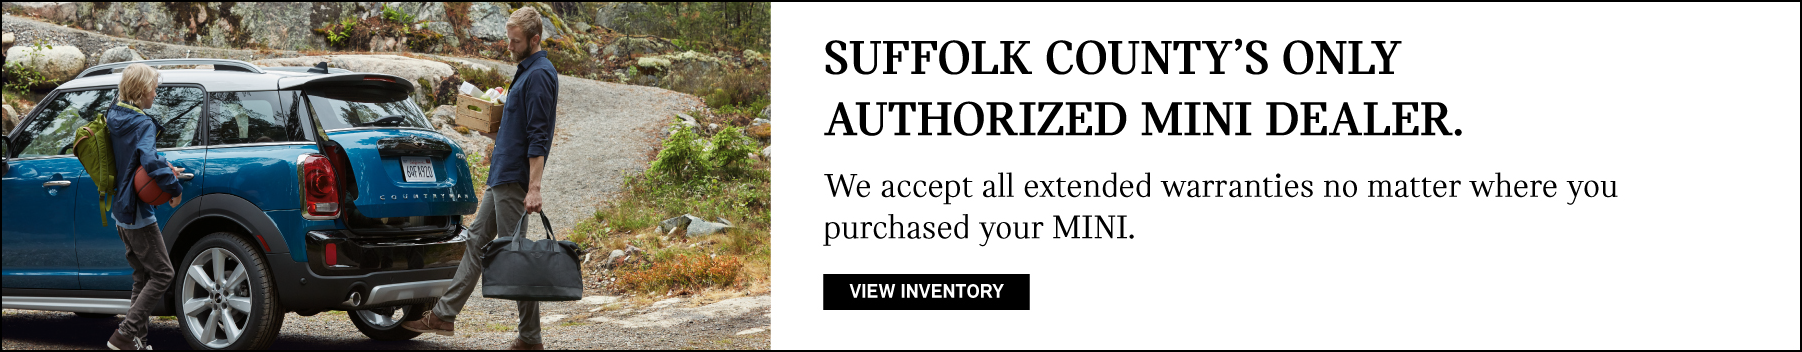 Suffolk County's only authorized MINI Dealer. We accept all extended warranties no matter where you purchased your vehicle.